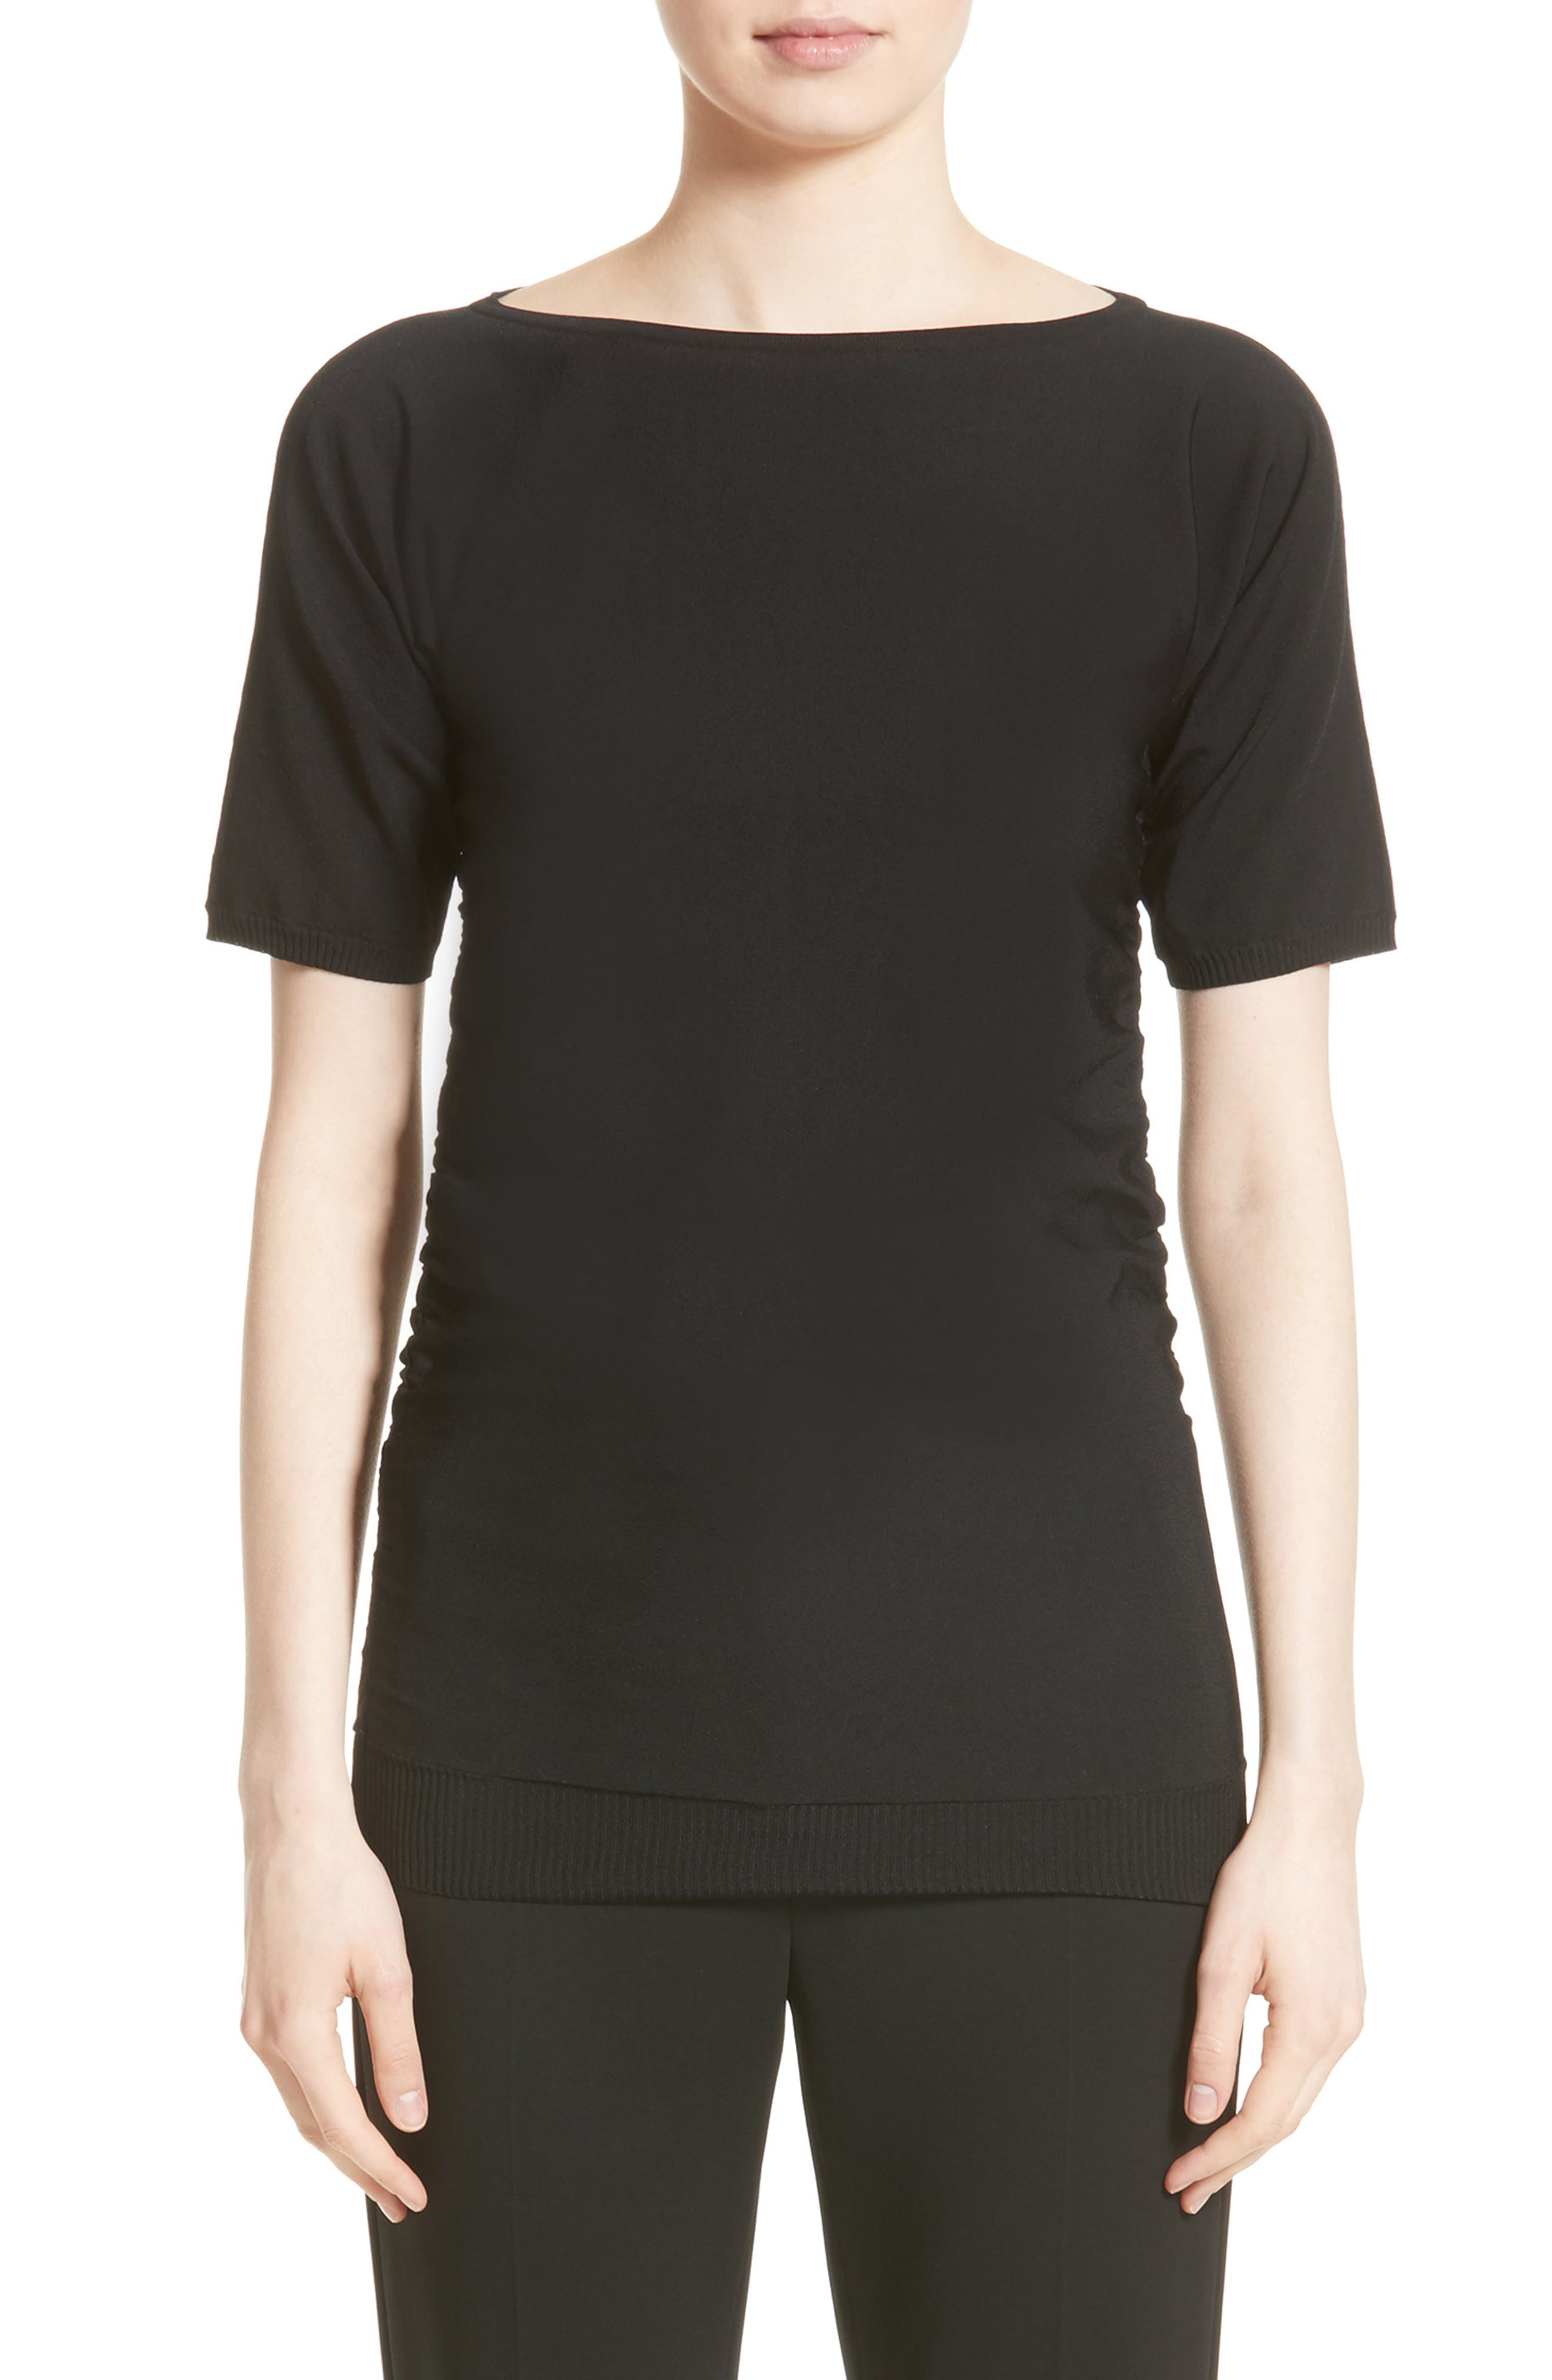 Joice Ruched Knit Top,                         Main,                         color, 001